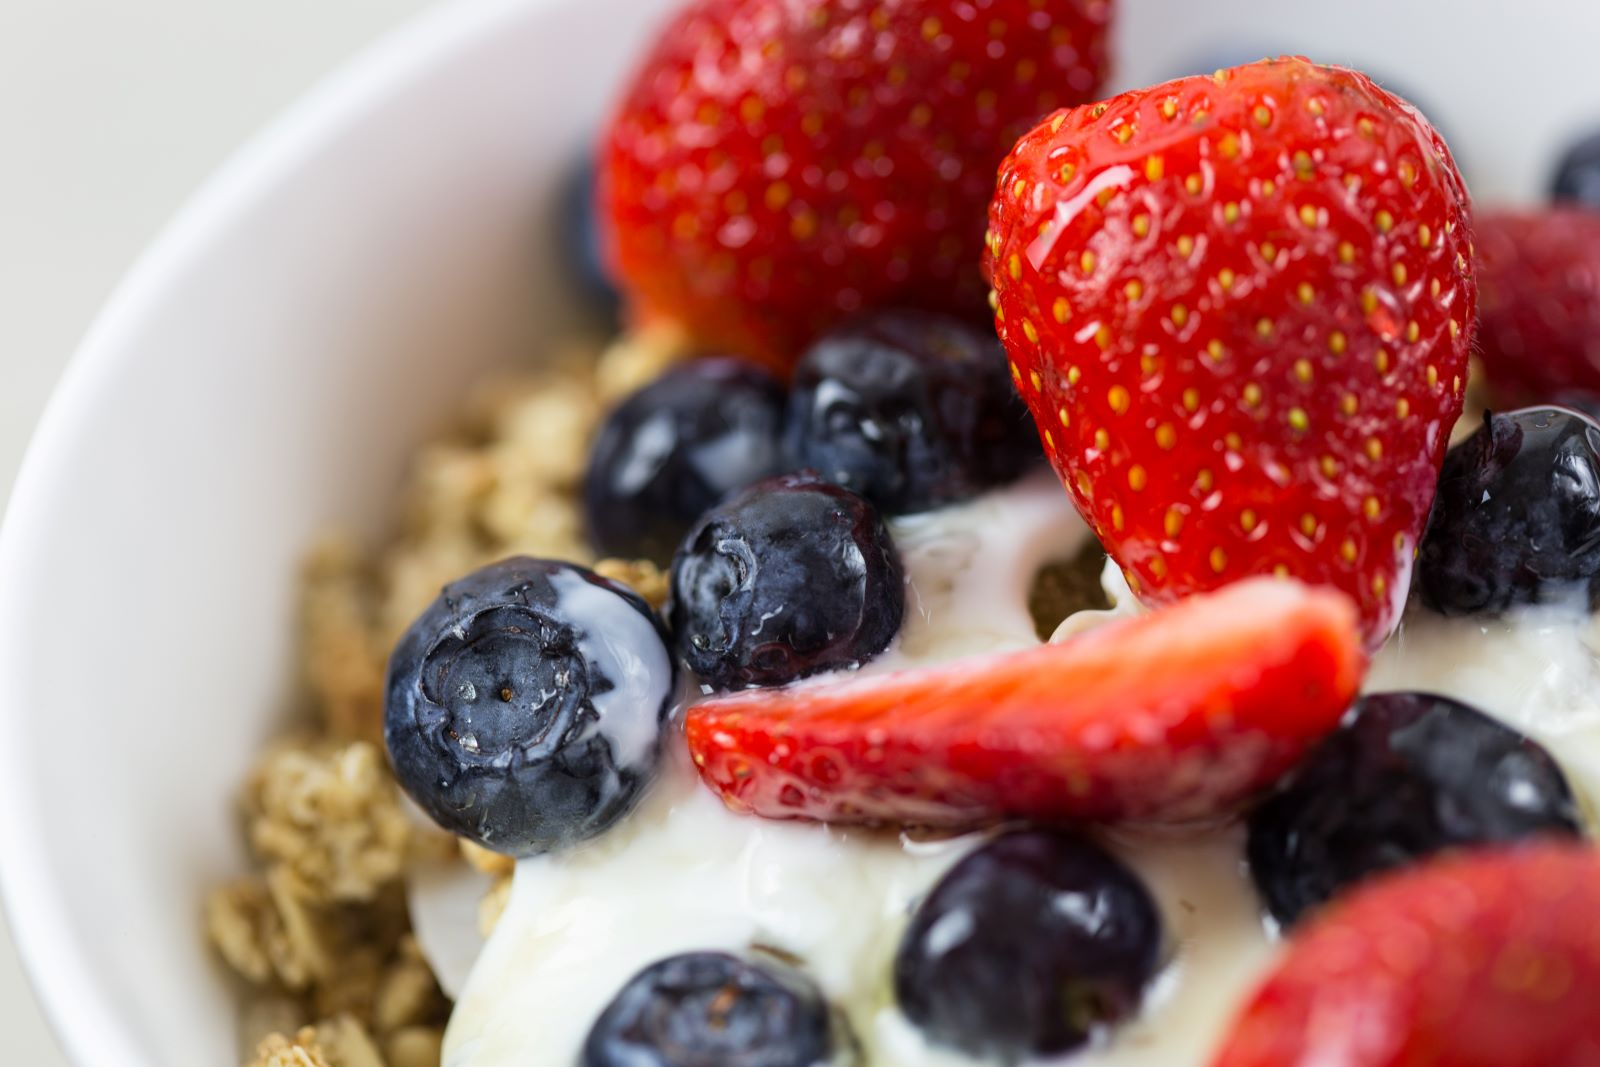 Bowl with yogurt parfait with strawberries and blueberries